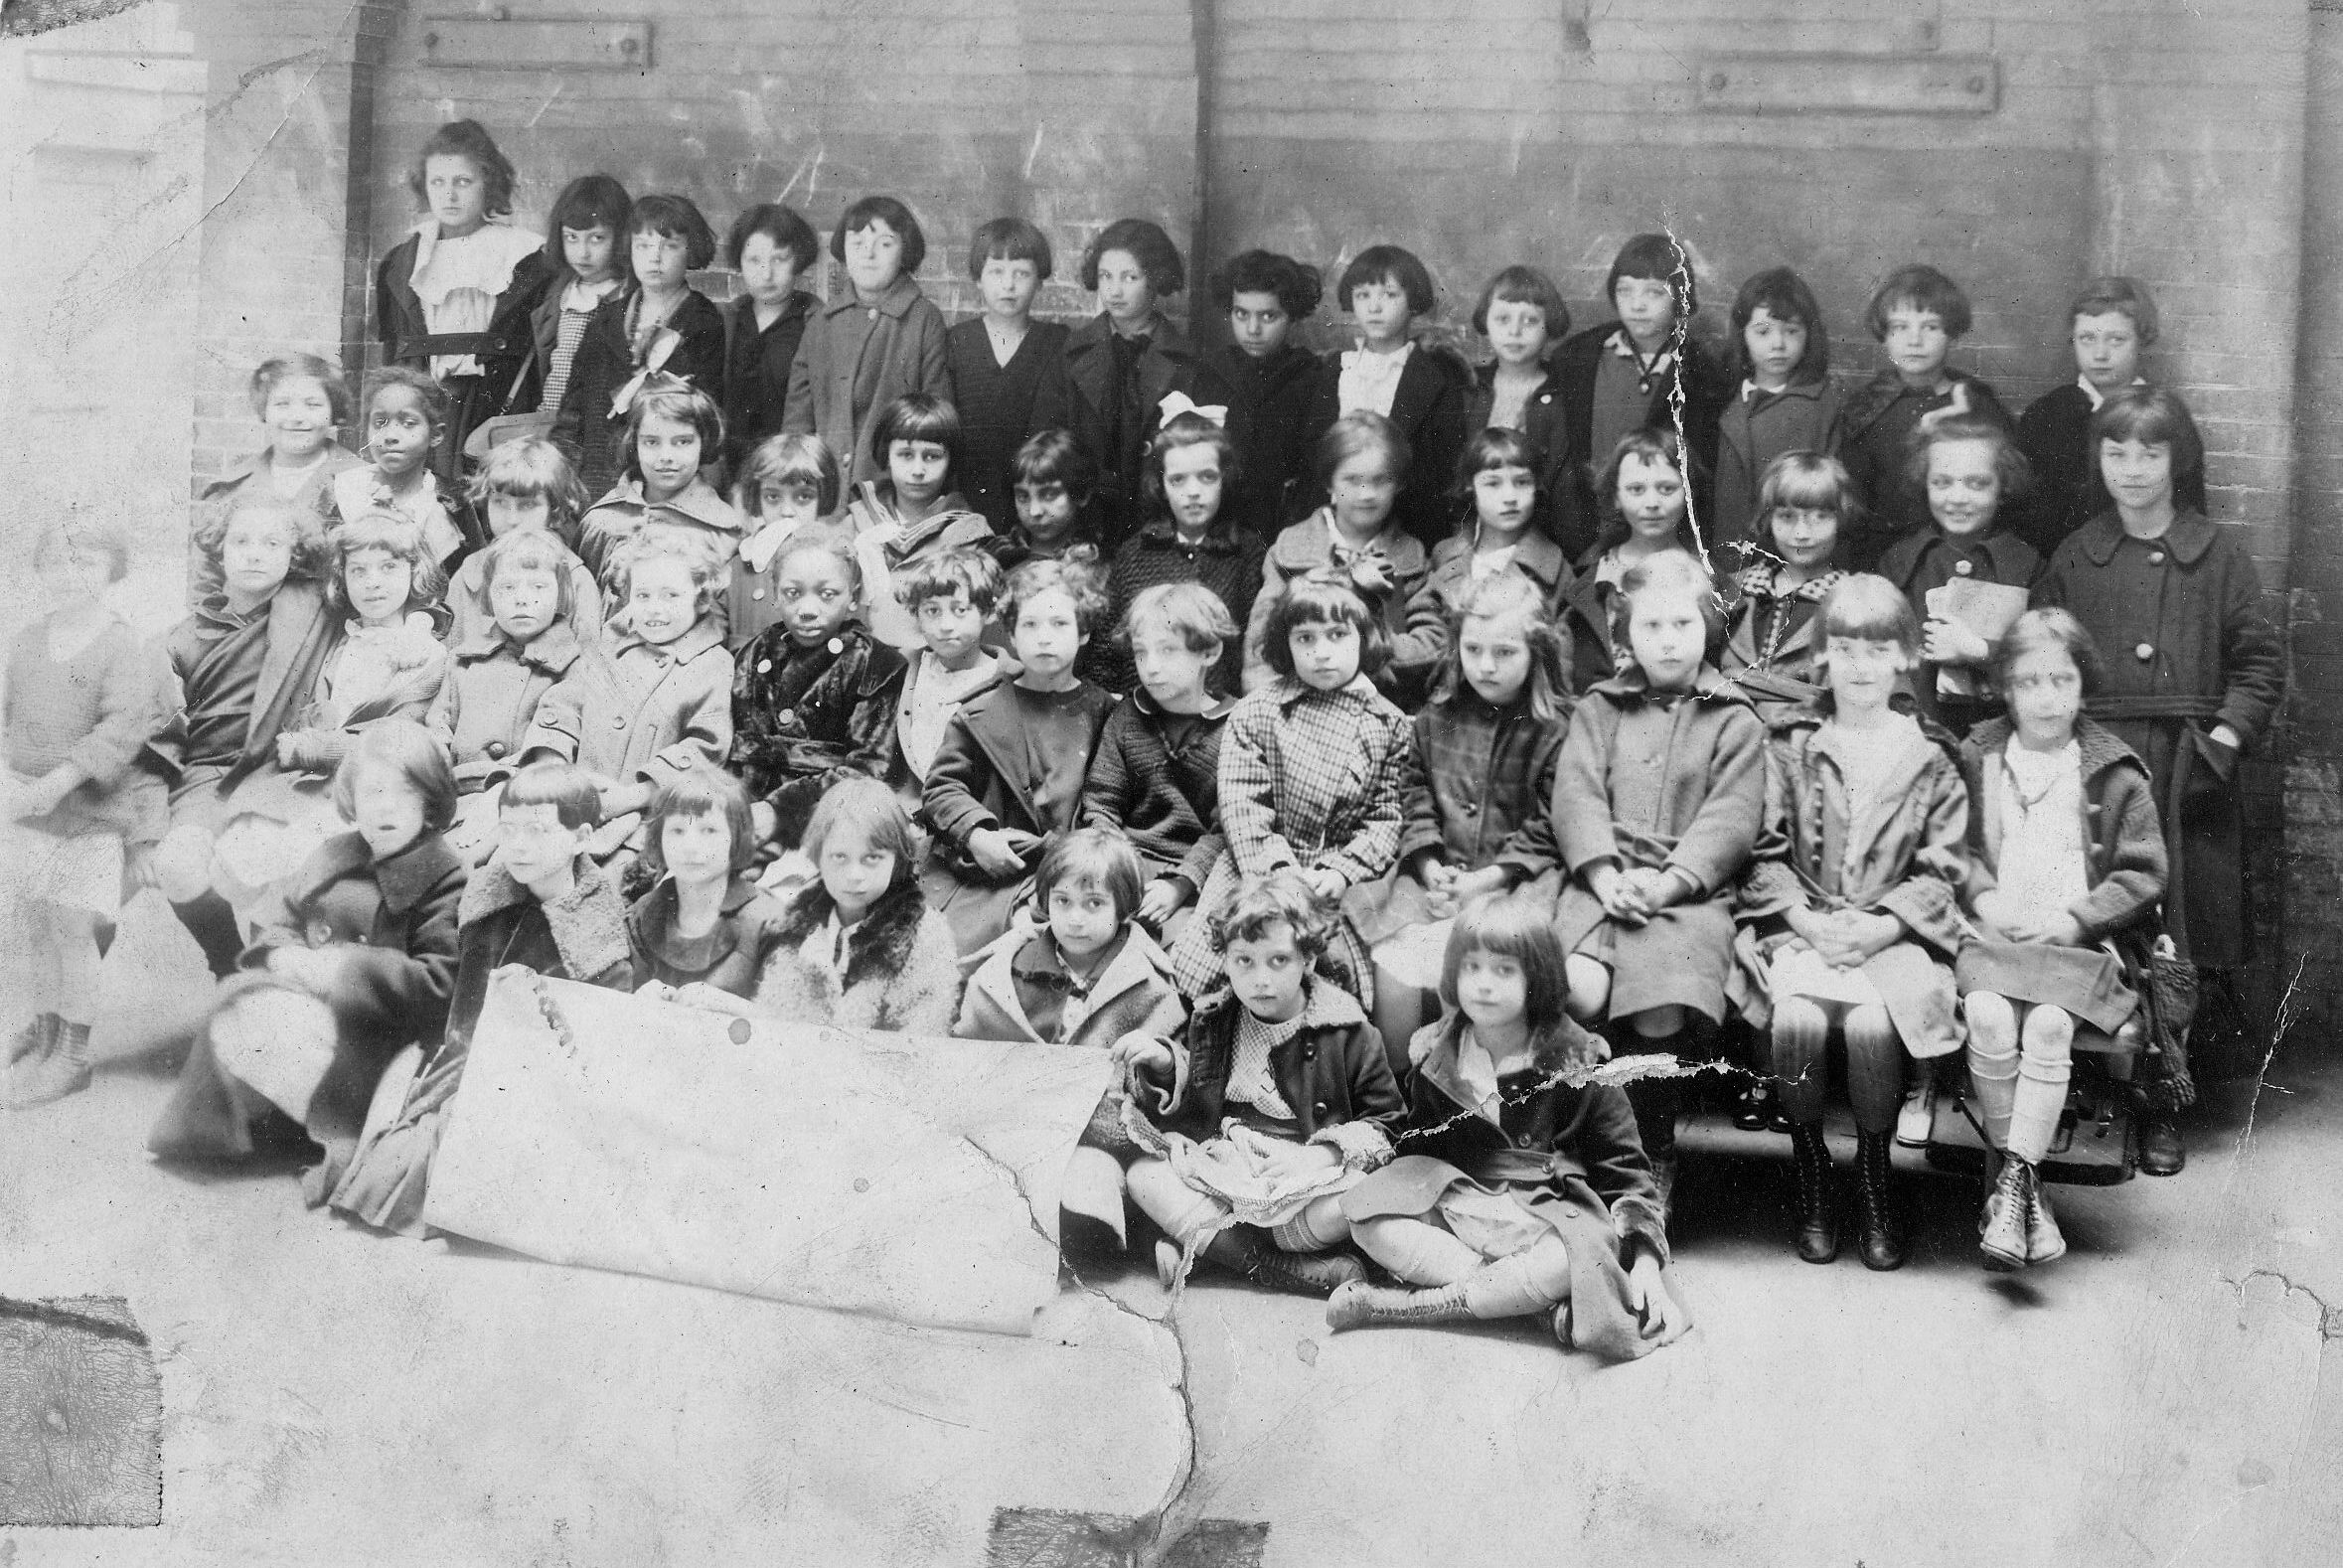 Adeline Kaplan School Photo